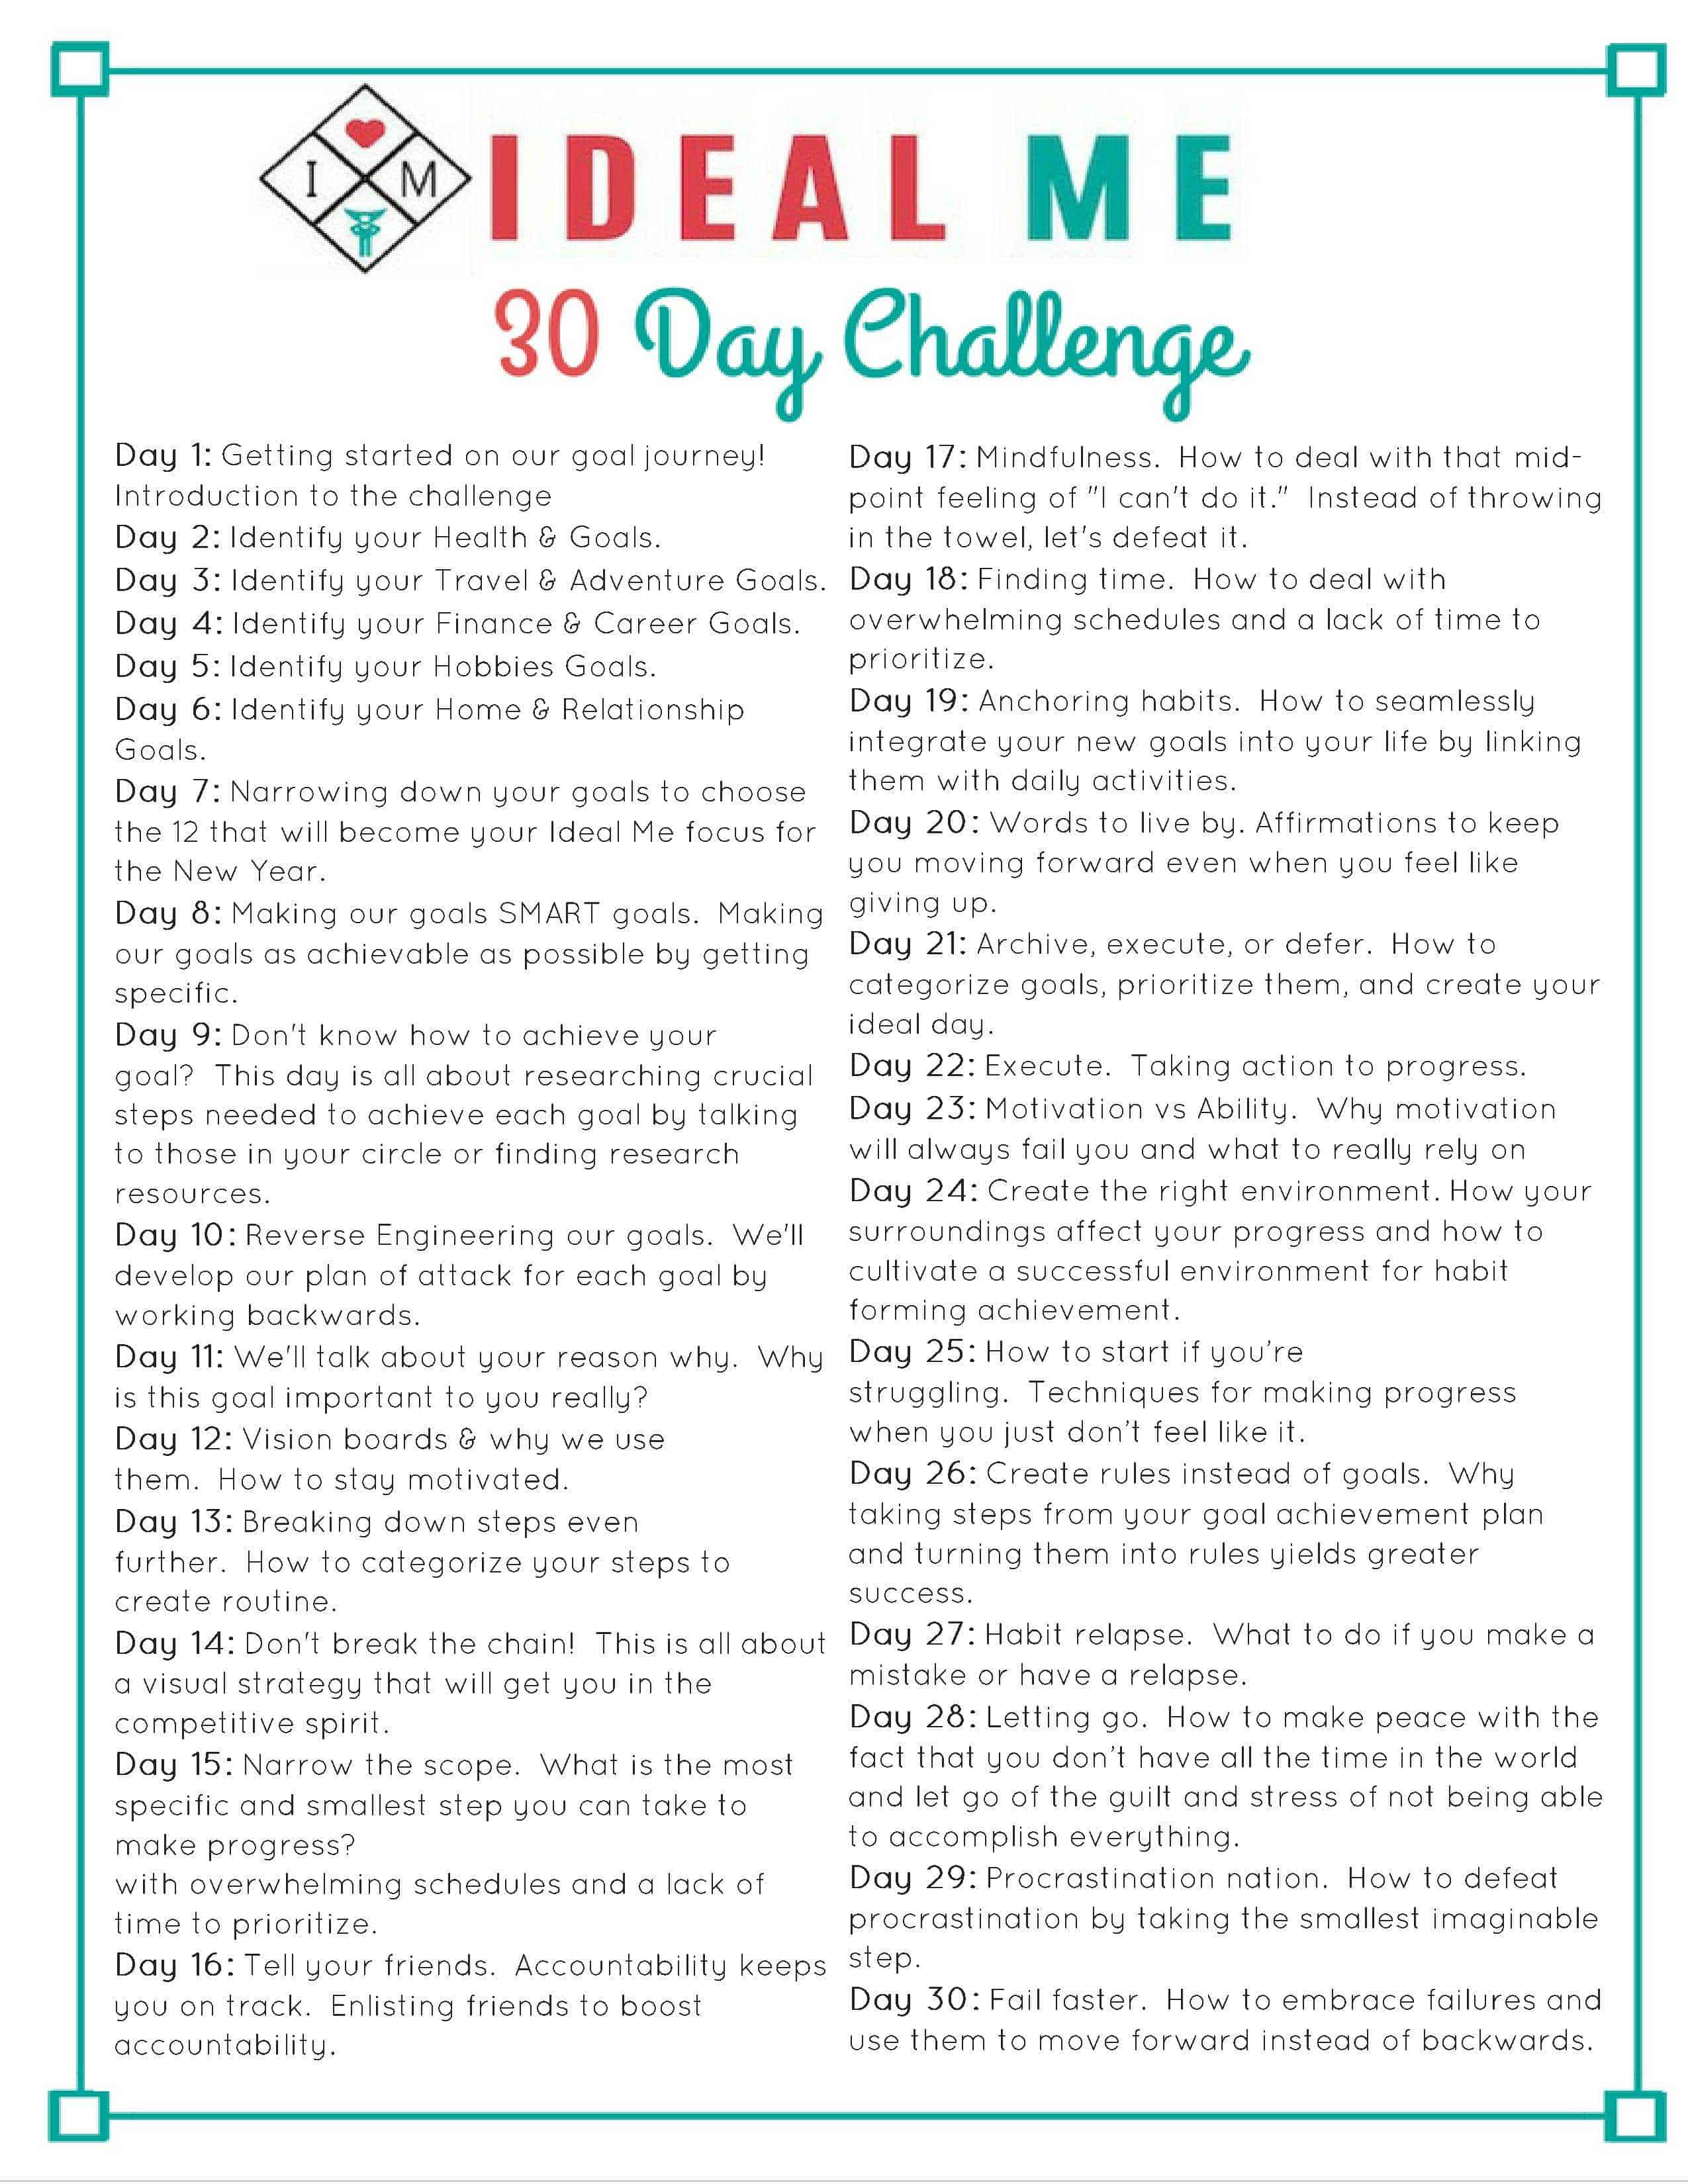 Introducing The 30 Day Ideal Me Challenge